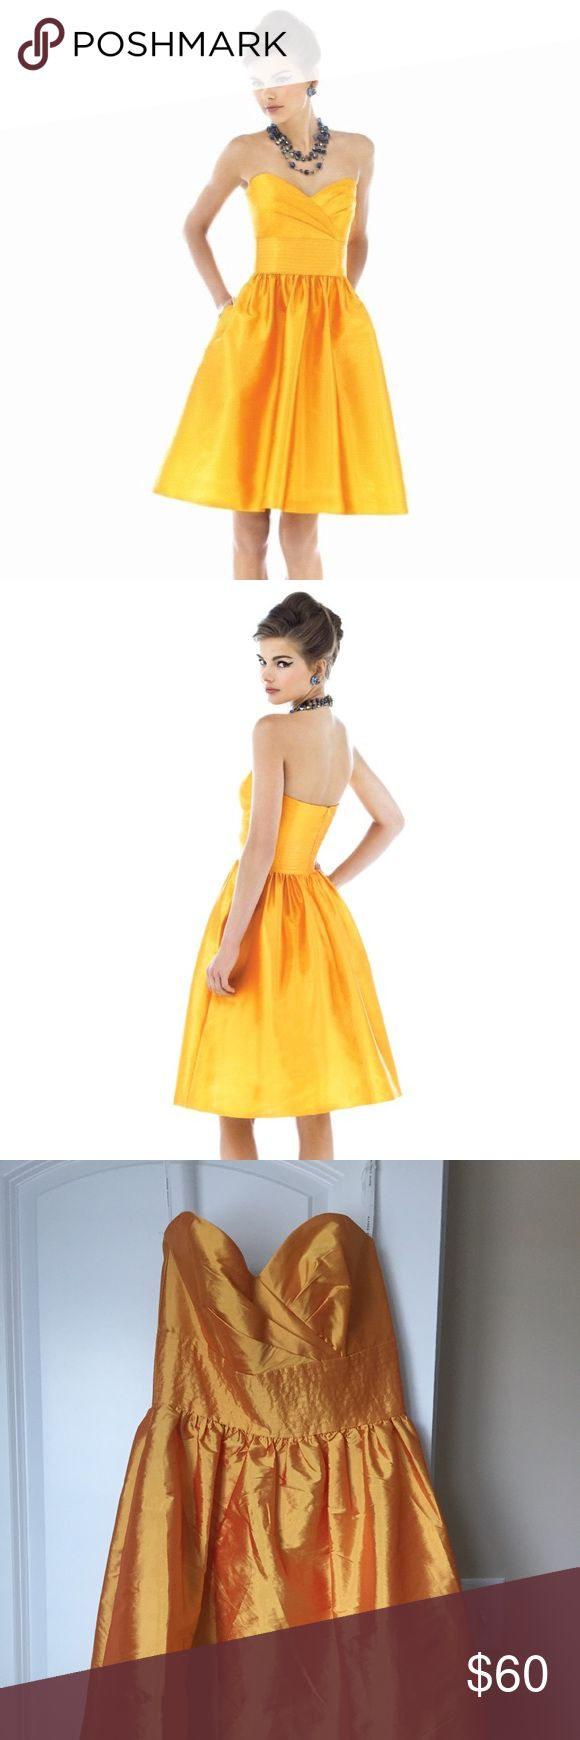 Alfred sung golden yellow cocktail dress 6 nwt yellow cocktail alfred sung golden yellow cocktail dress 6 nwt yellow cocktail dresses alfred sung and mango shorts ombrellifo Gallery